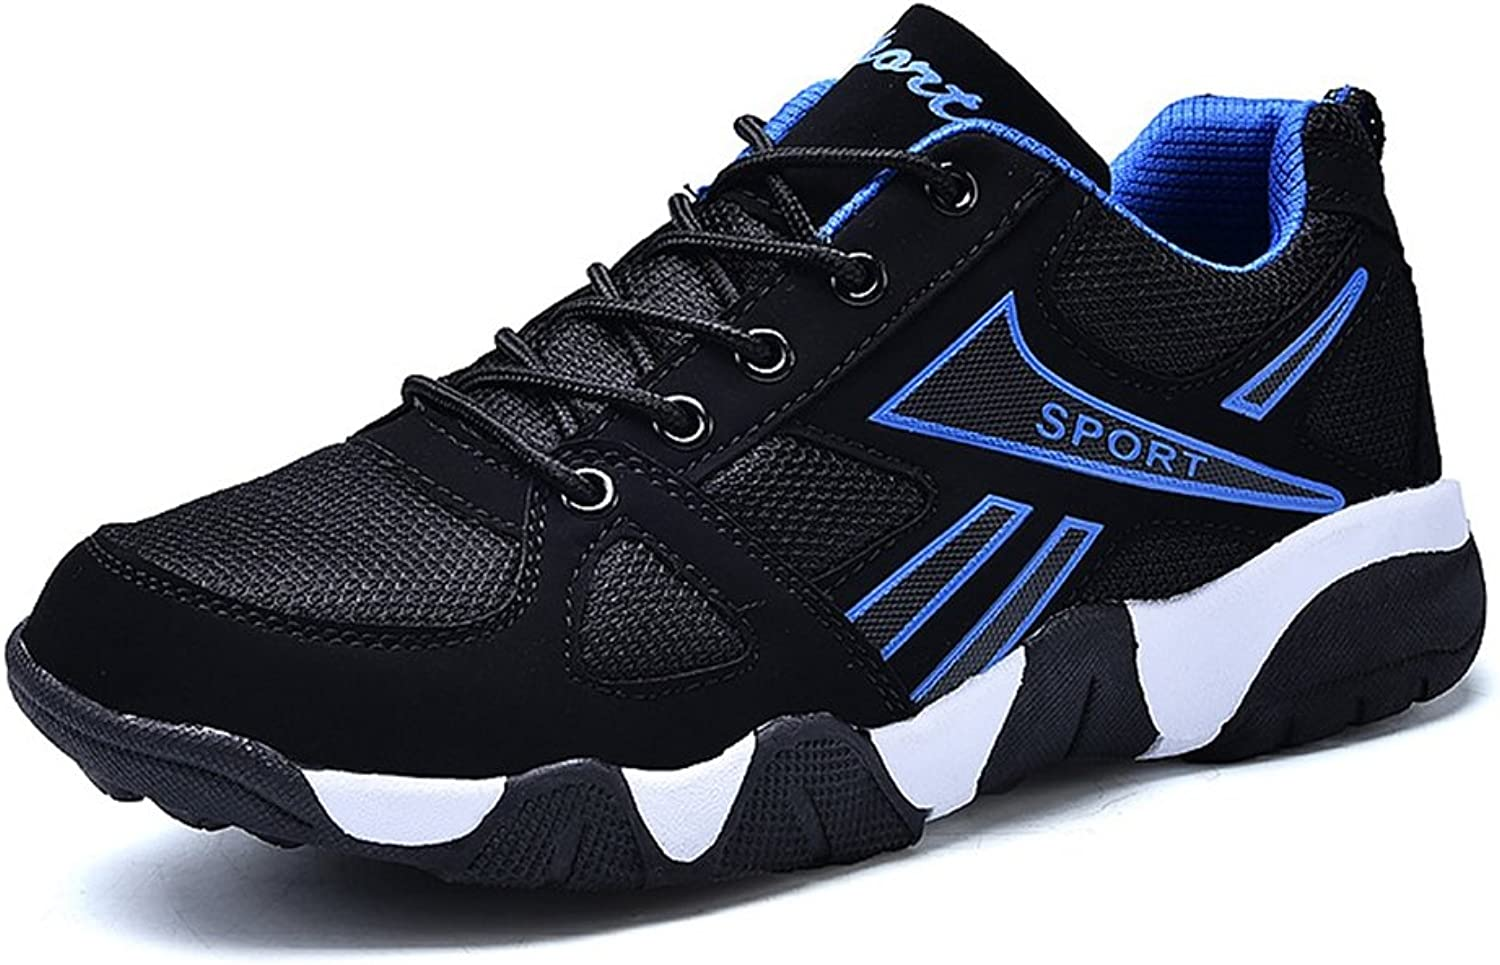 XTIANUK Mens Running shoes Youth Teenagers Shock Absorbing Mesh Upper School Gym Sport Lace Up Sneakers Size 3-10 UK